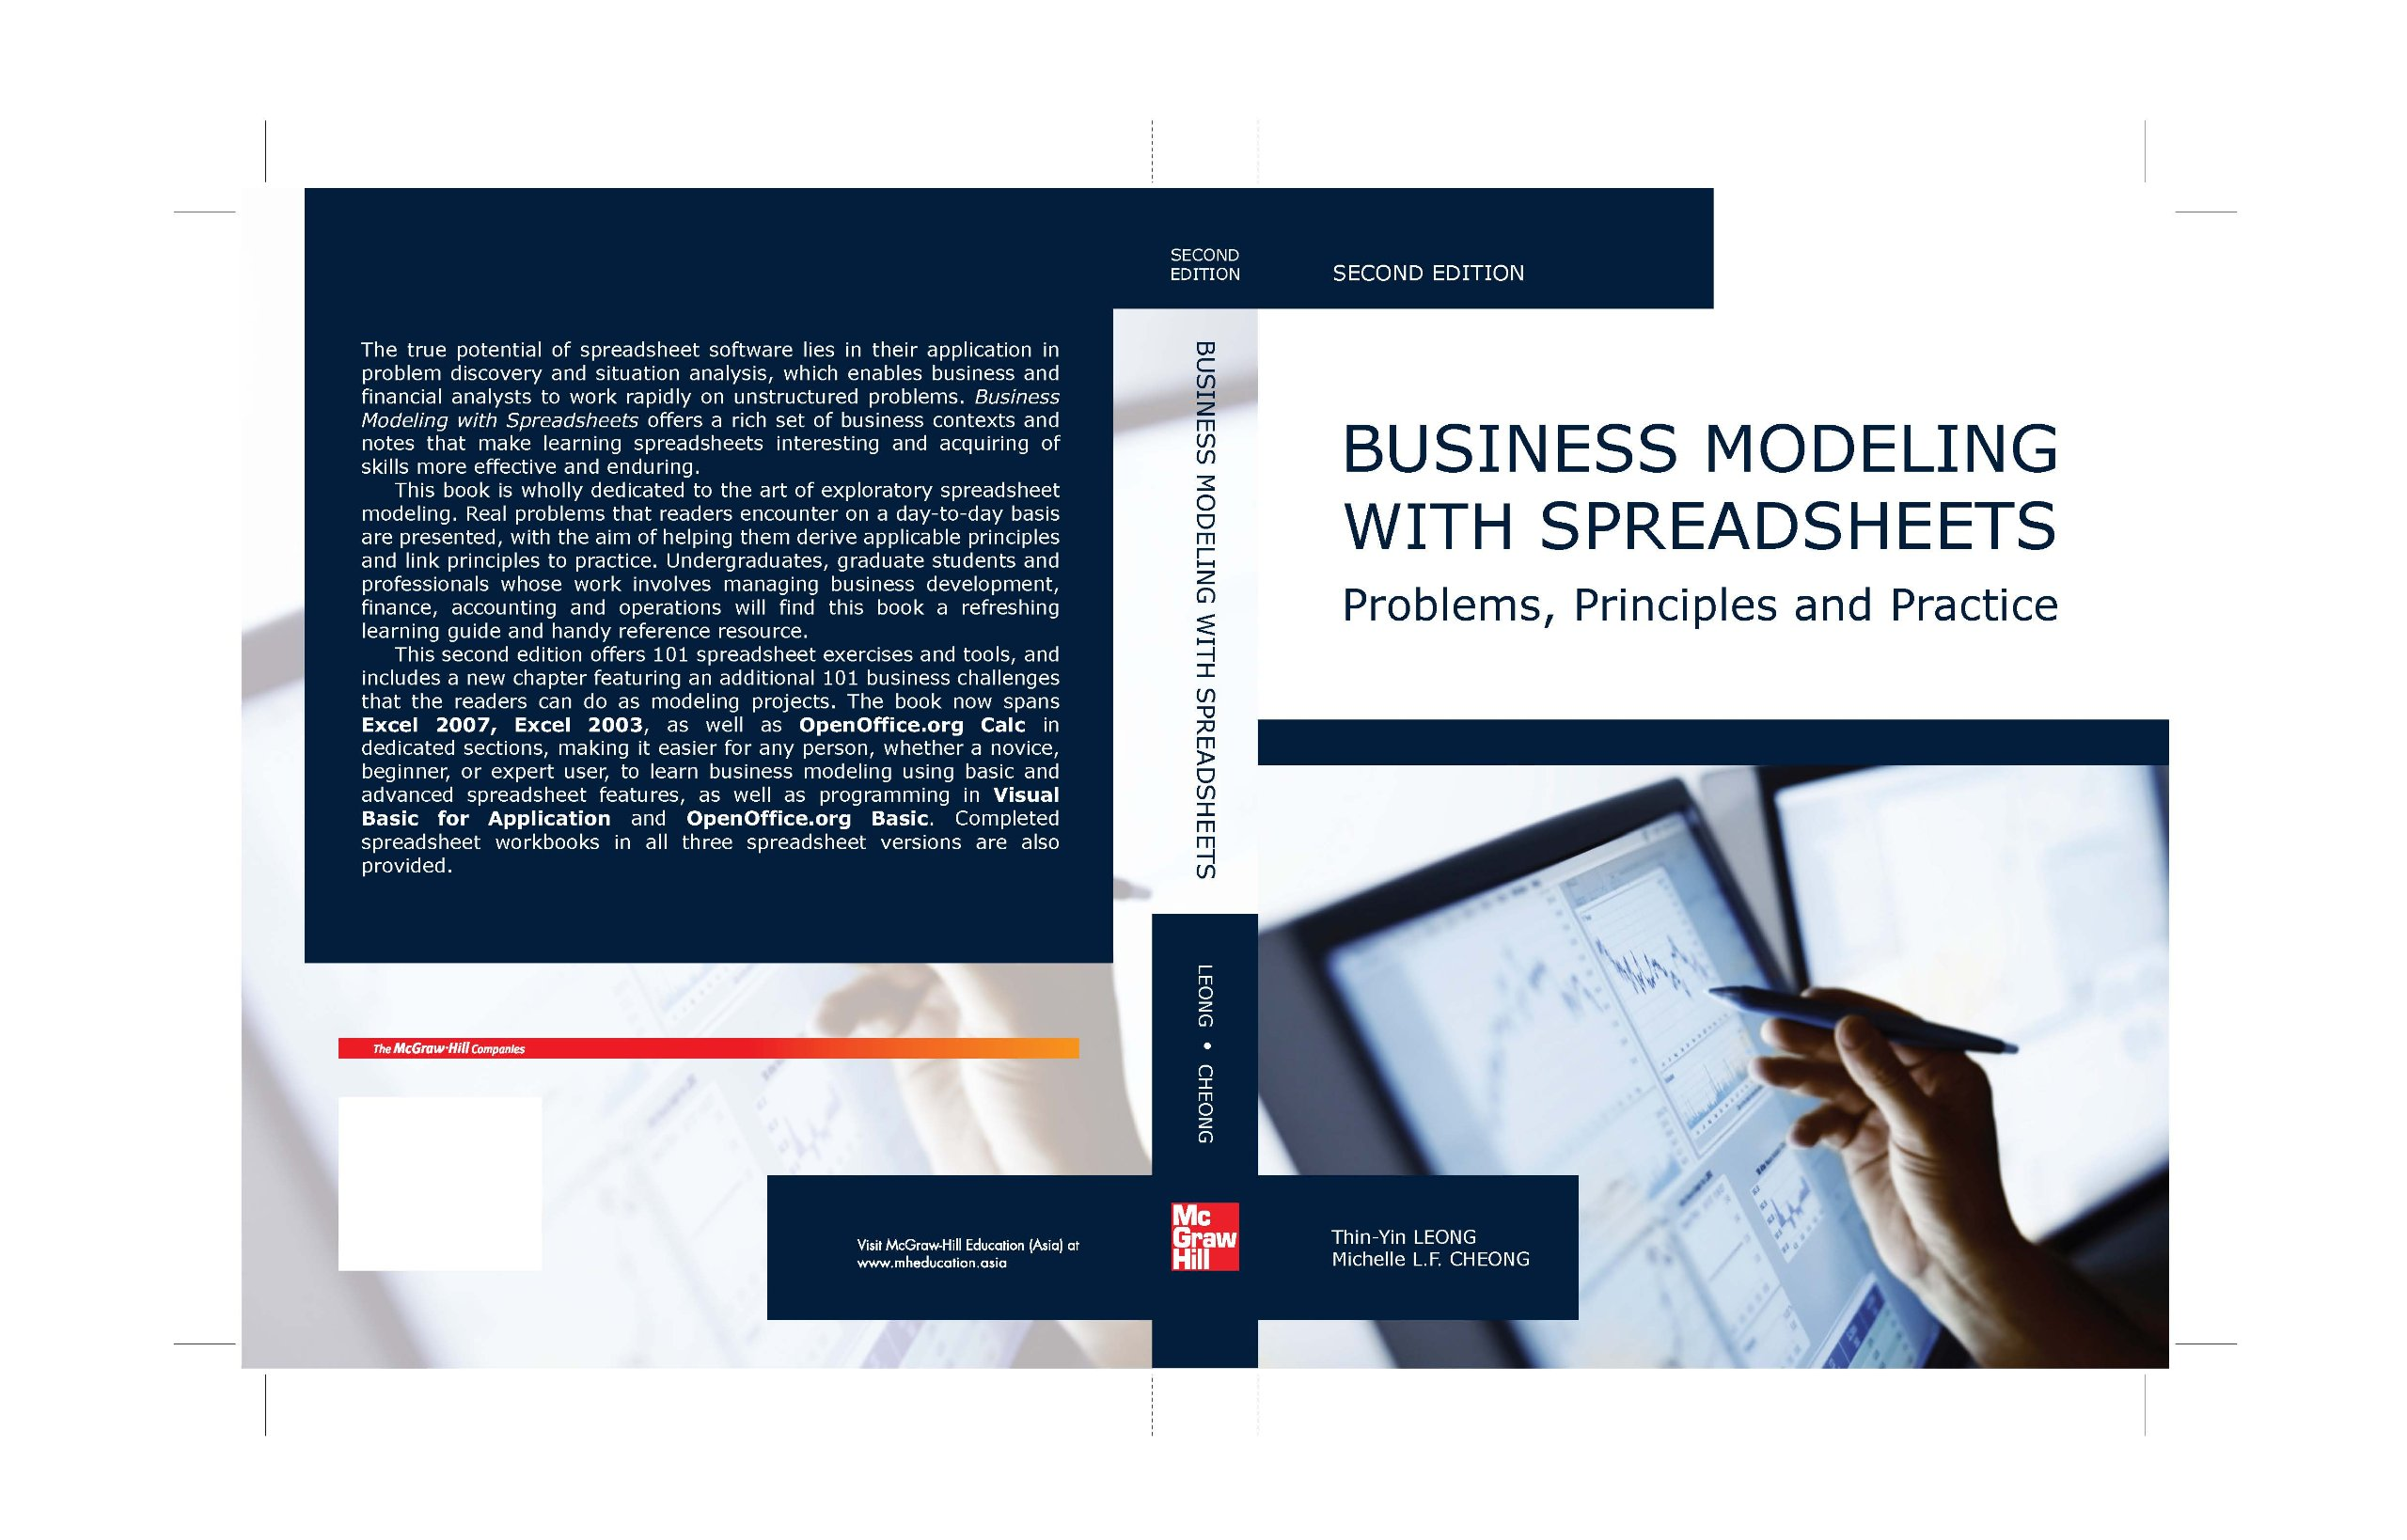 Business Modeling with Spreadsheets Problems, Principles